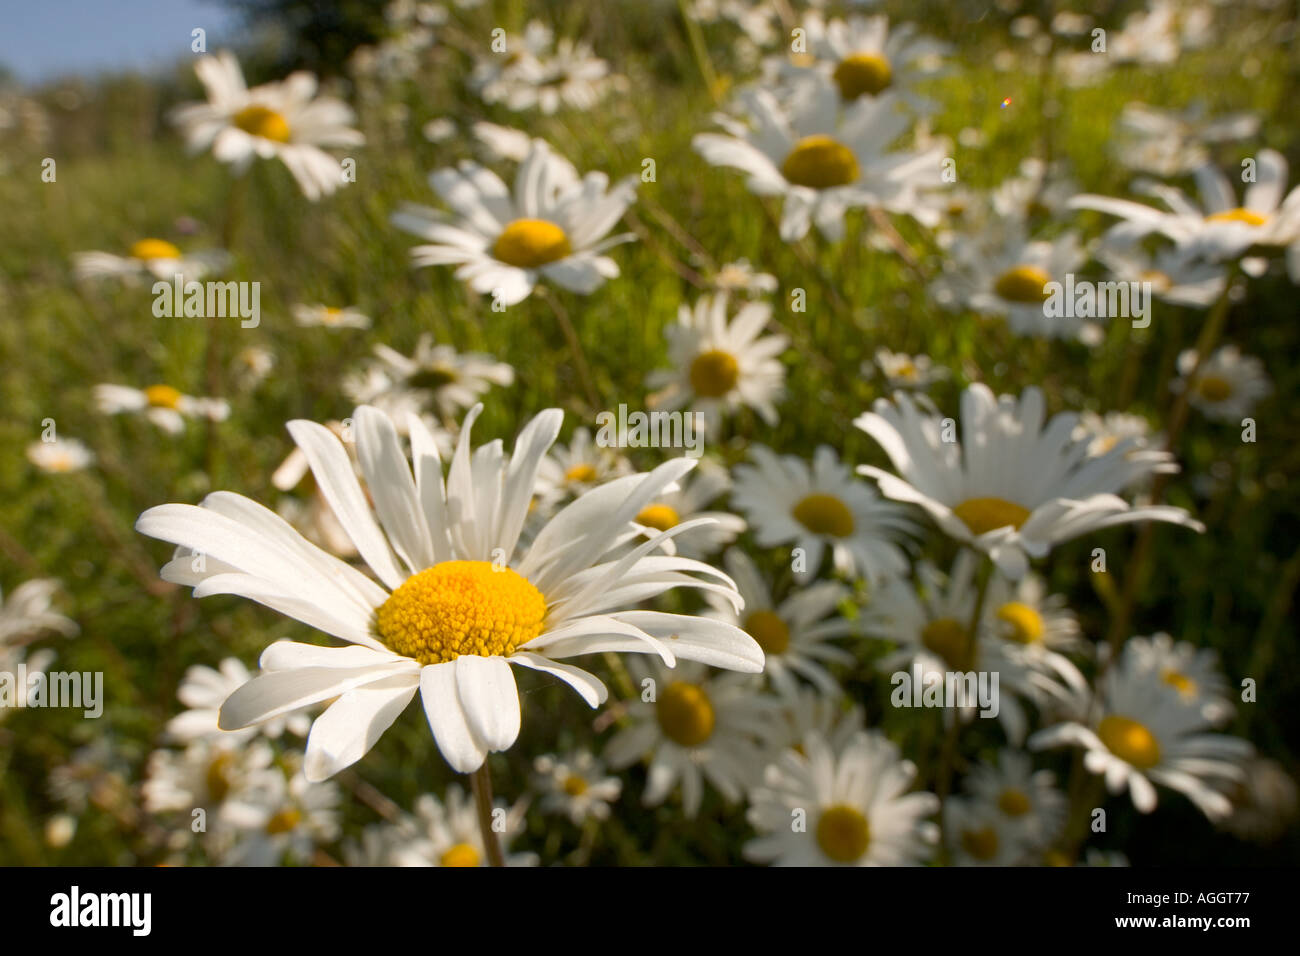 Oxeye daisies on bank beside a road Stock Photo